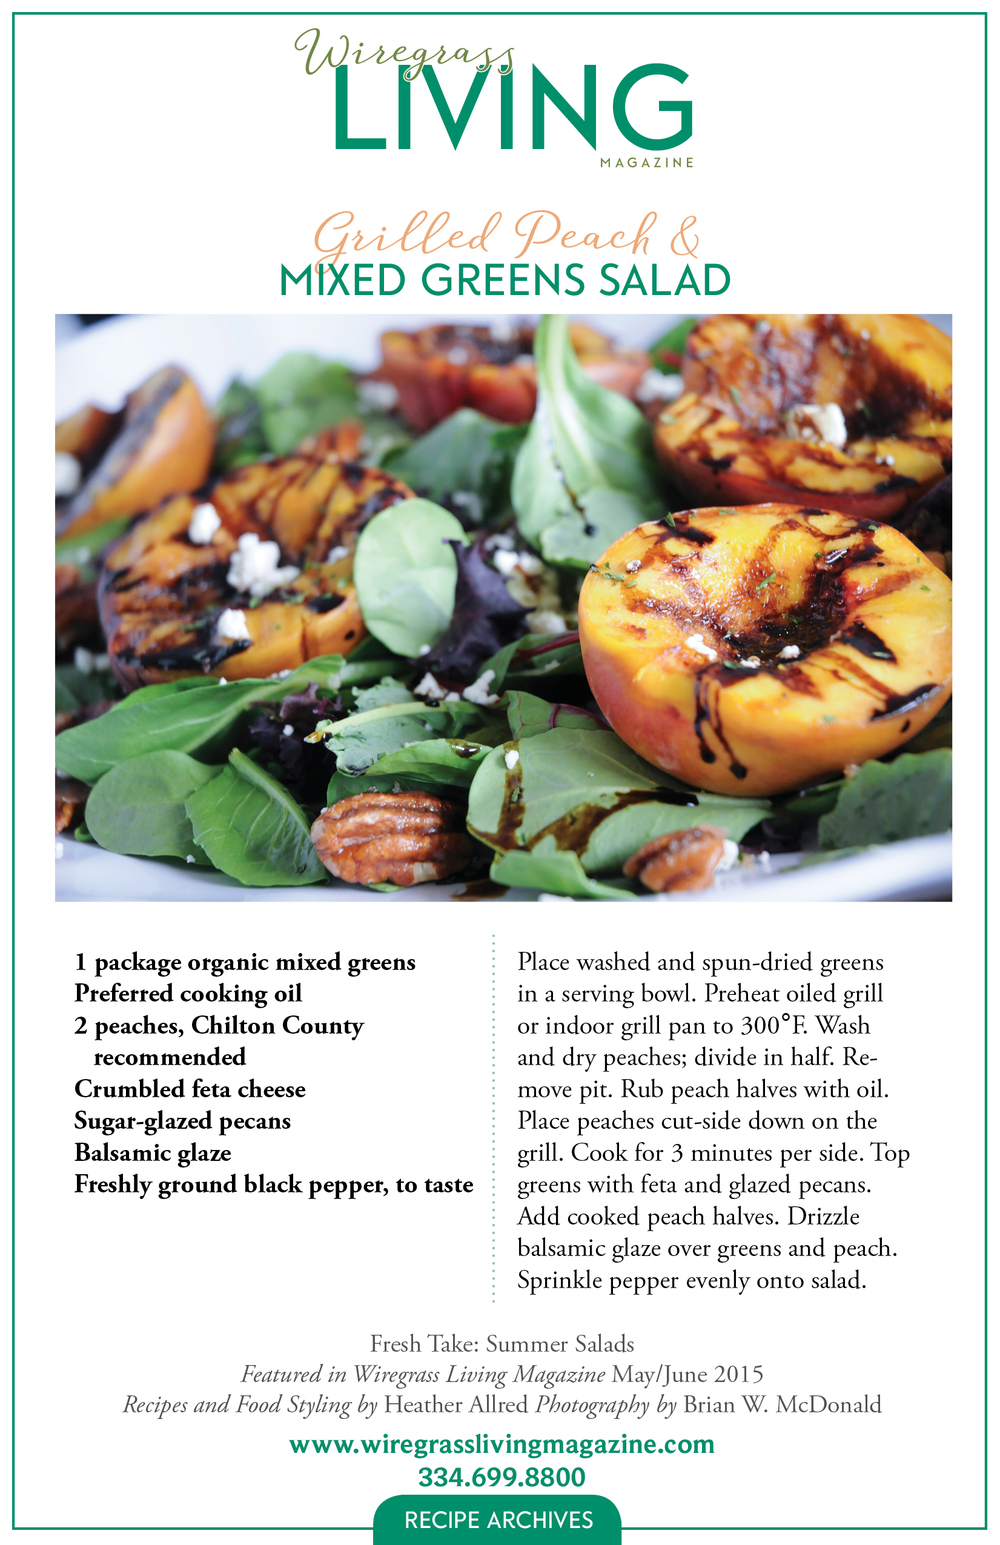 Grilled Peach & Mixed Greens Salad, Wiregrass Living Magazine